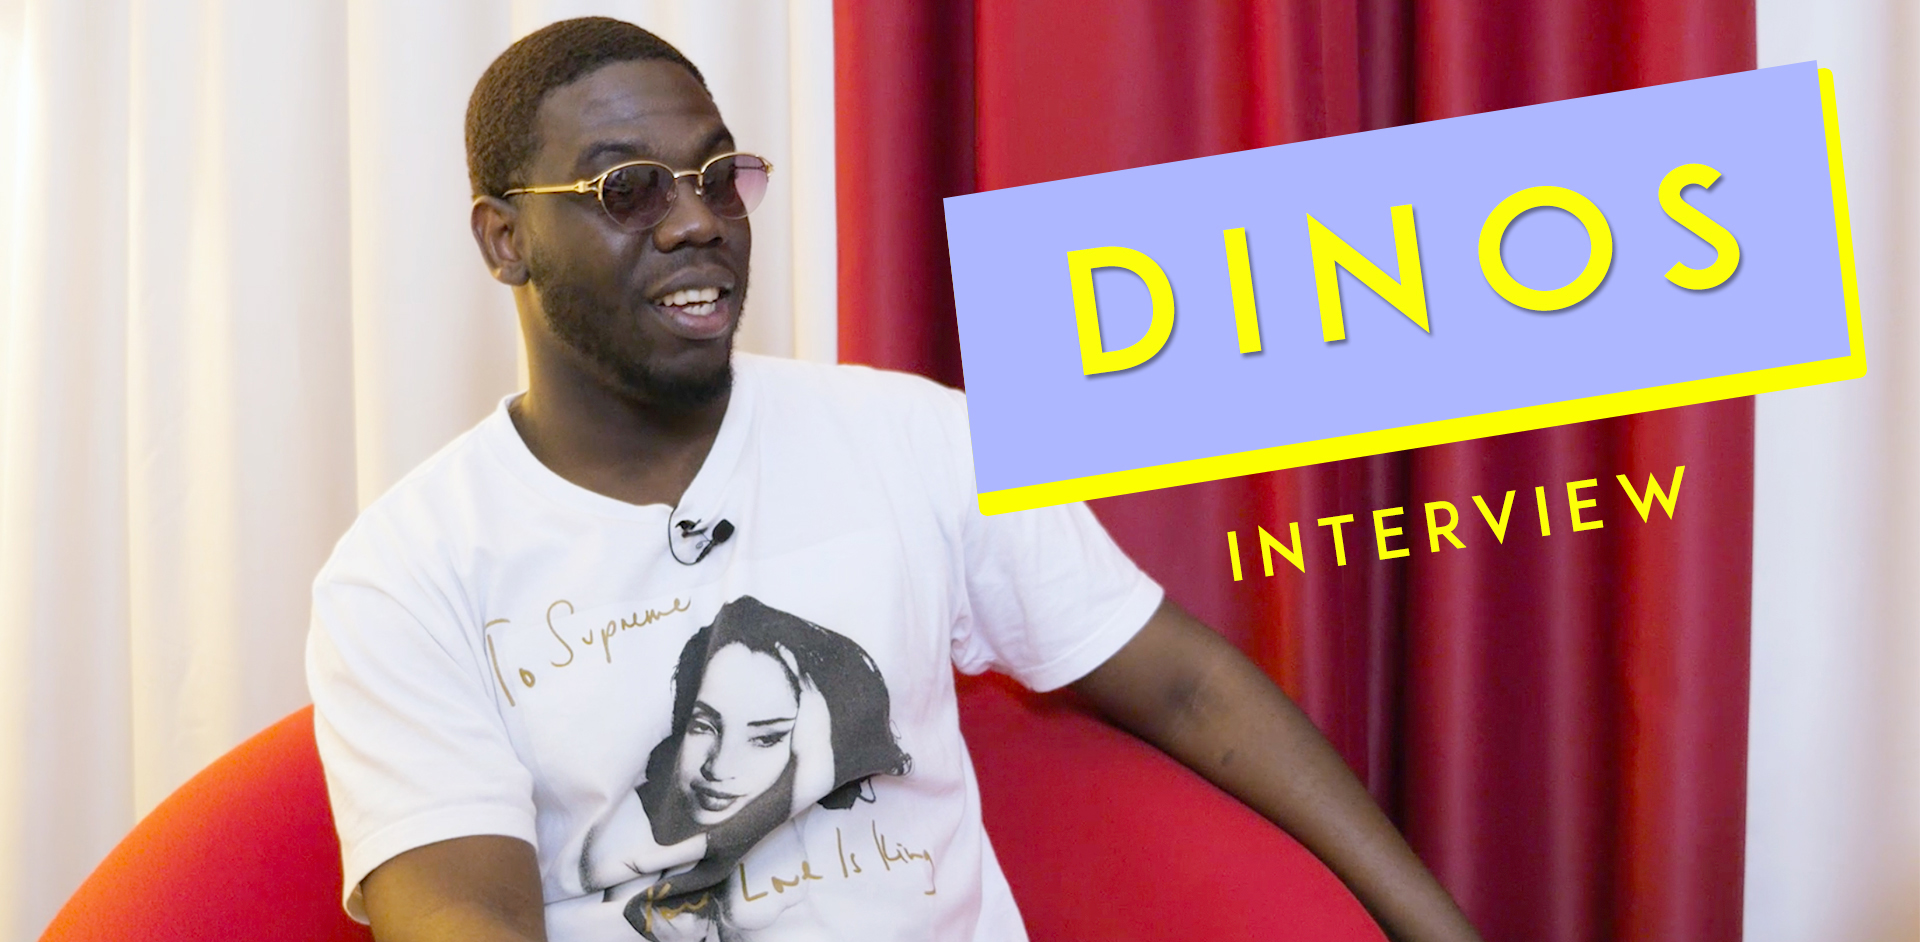 Dinos, interview Imany.